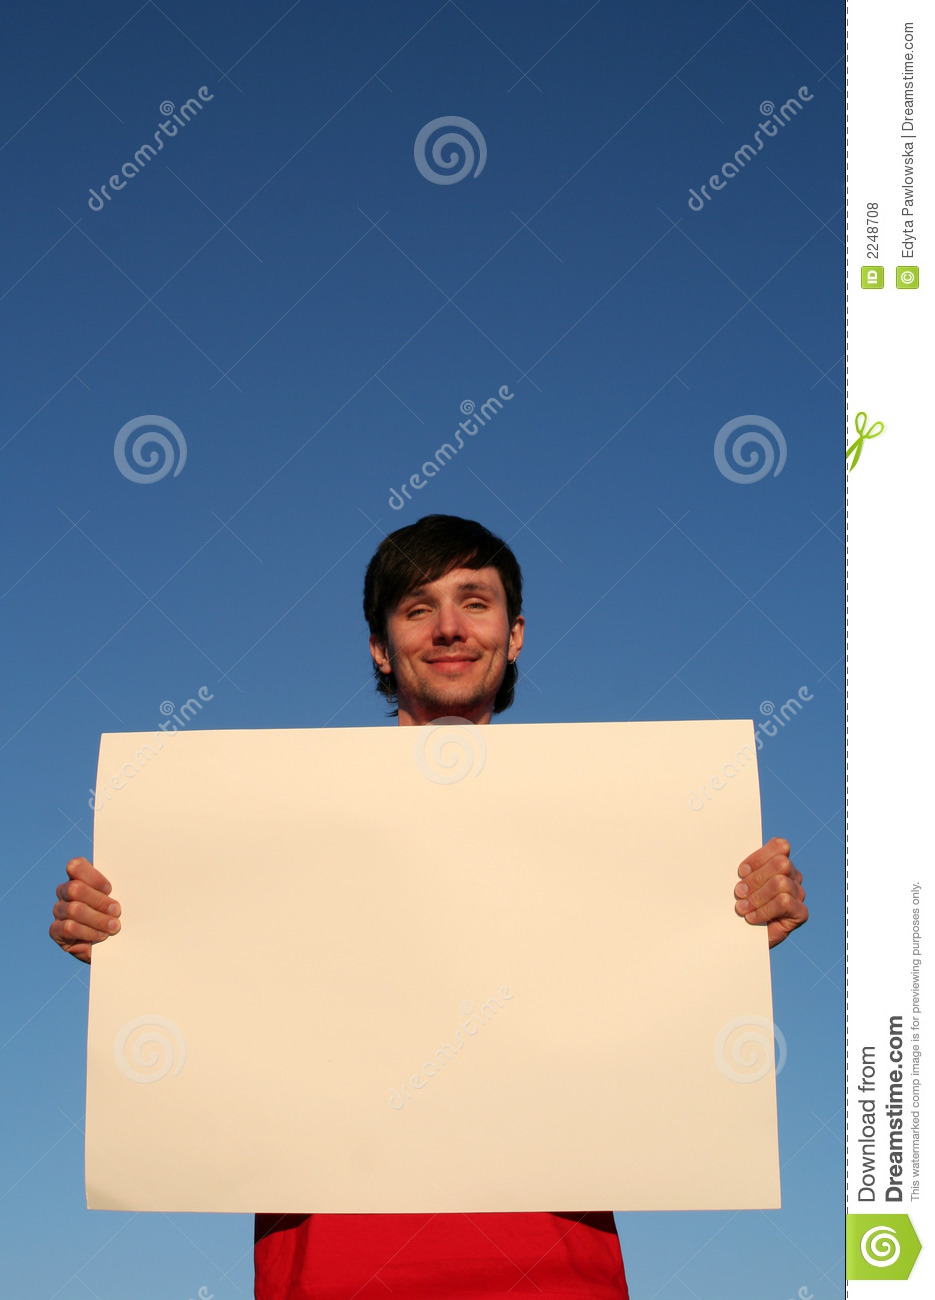 man holding blank poster board stock photo image of advertisement